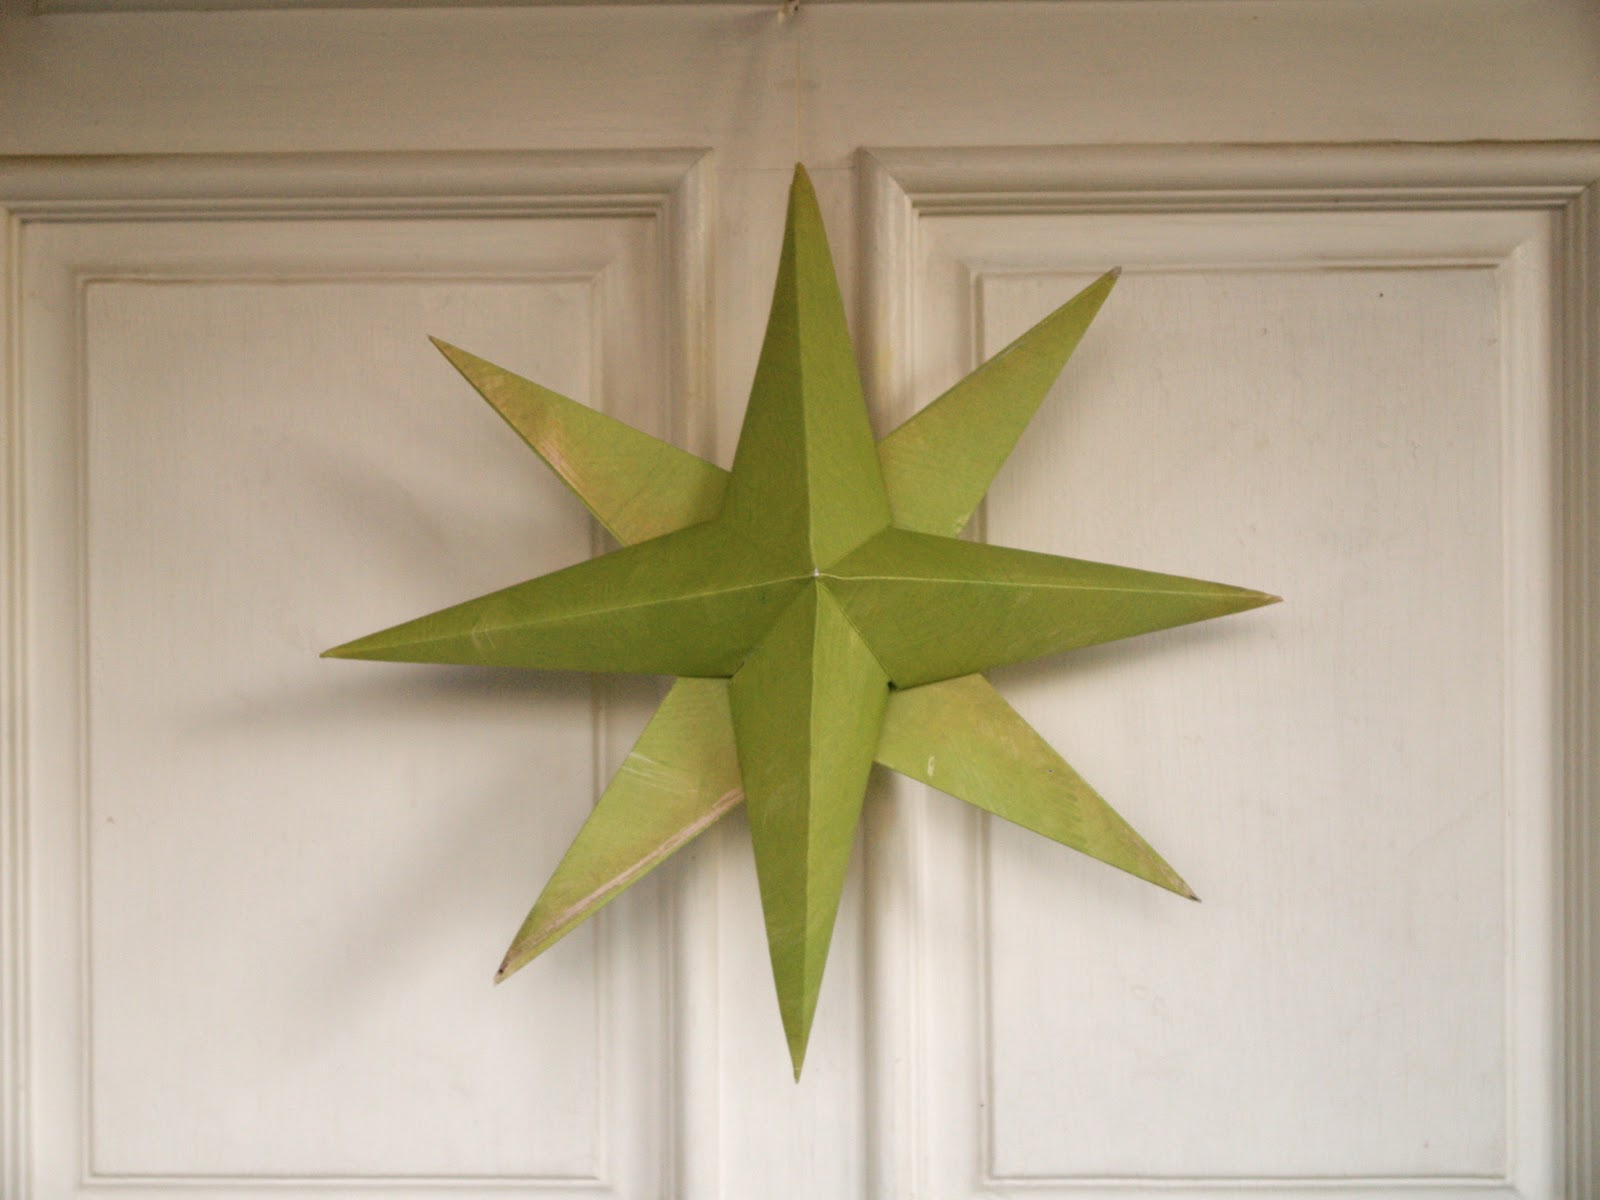 Folded Paper Christmas Origami Stars - The Magic Onions - photo#35